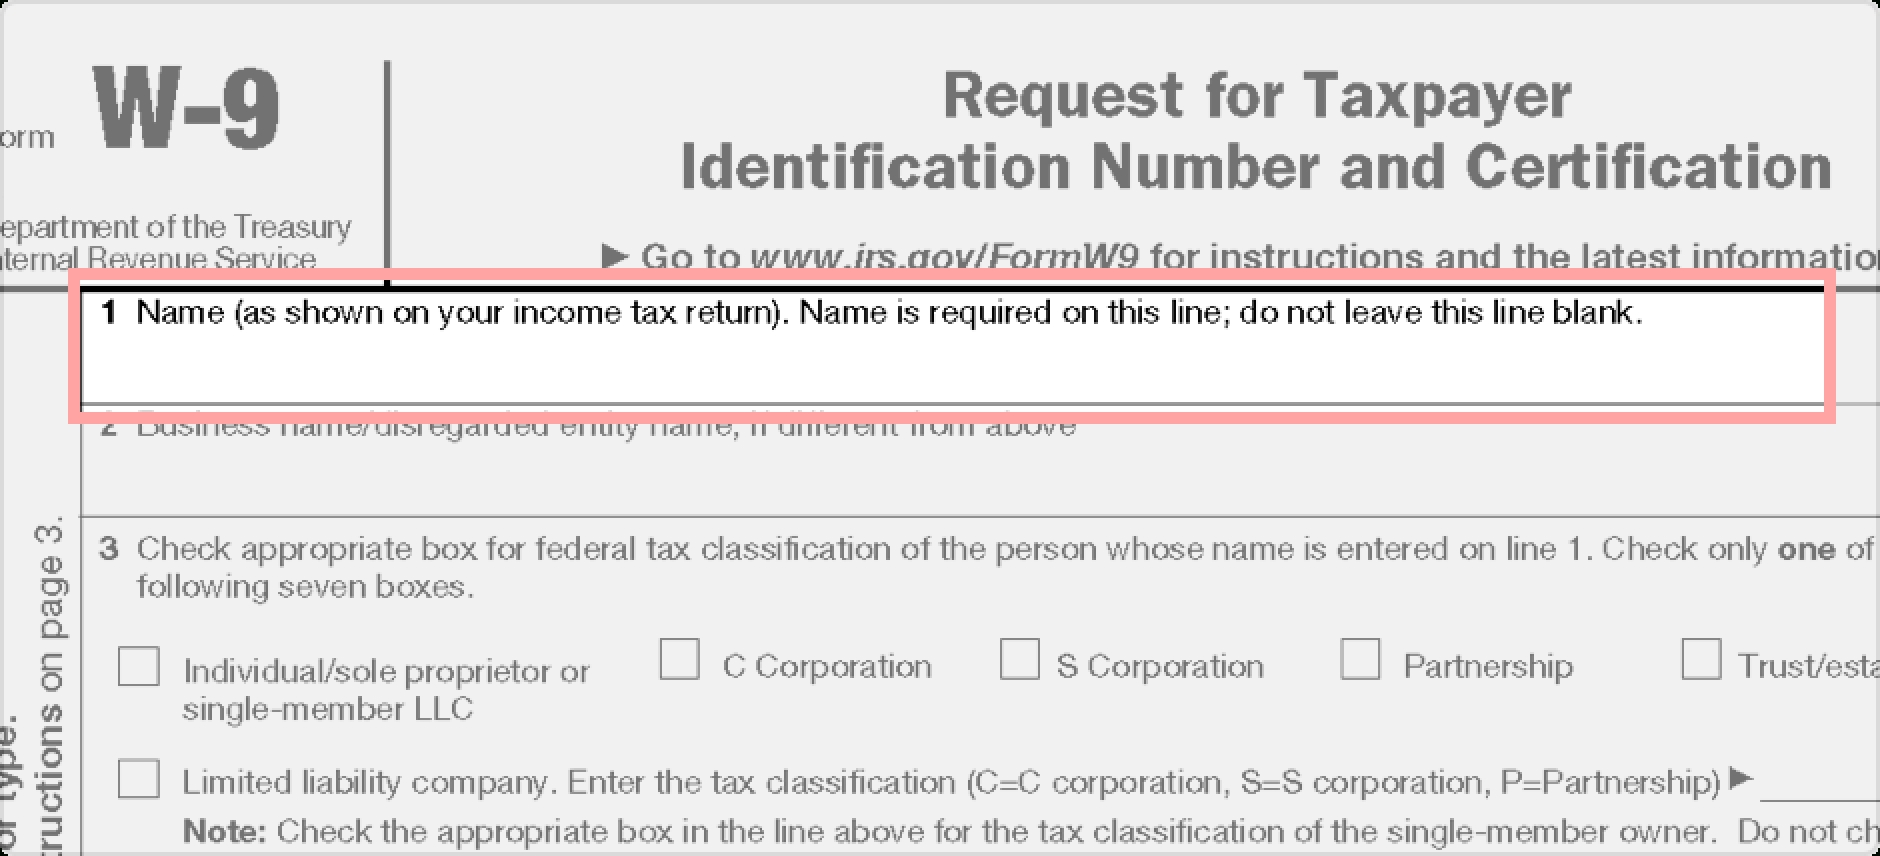 W-9 Form: Fillable, Printable, Download Free. 2020 Instructions-2021 Printable W 9 Form Free